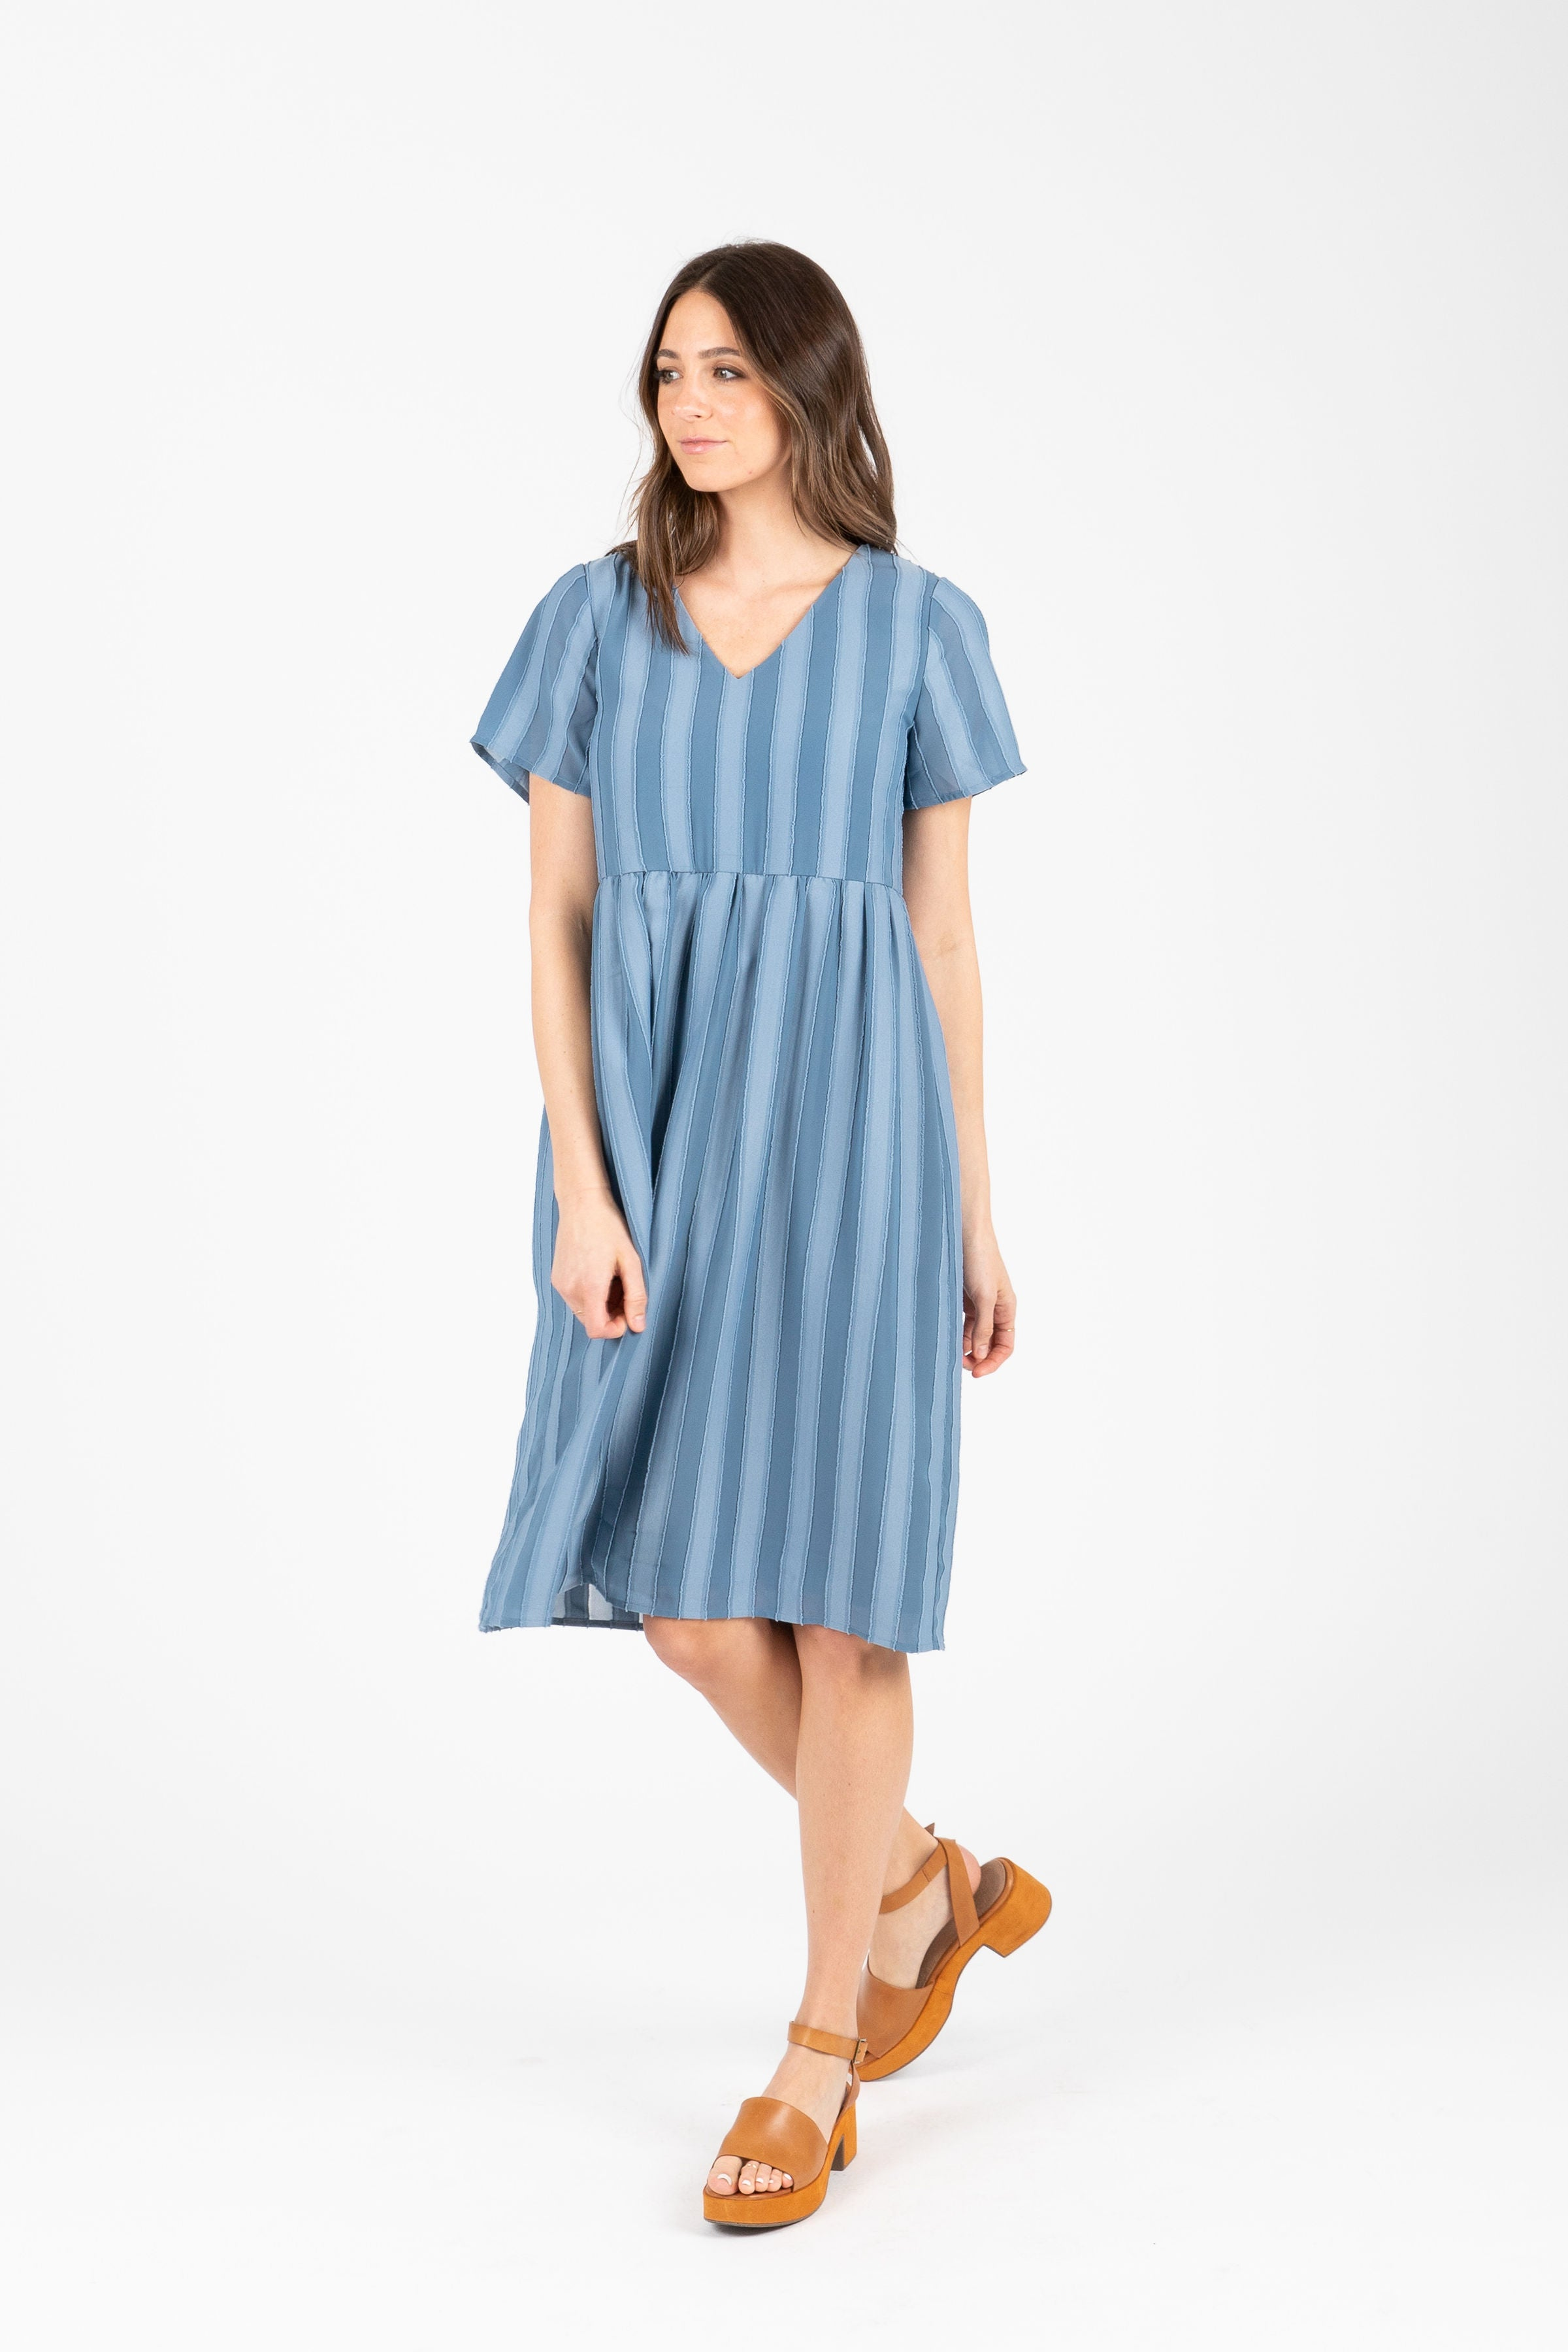 The Carnation Striped Dress in Blue